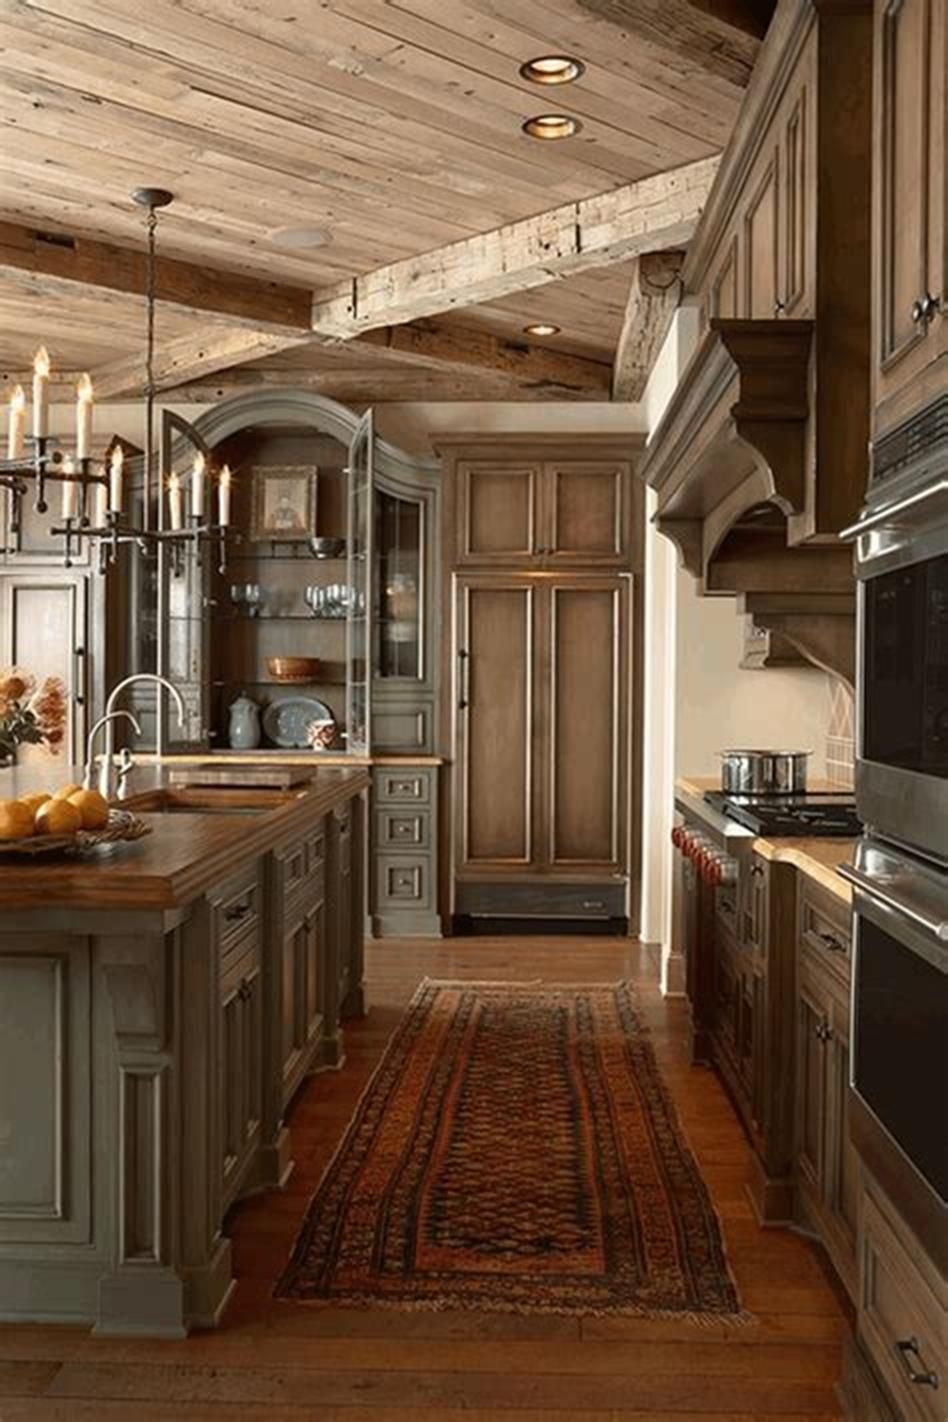 47 Inspiring Small Rustic Kitchen Design Ideas 2019 Country